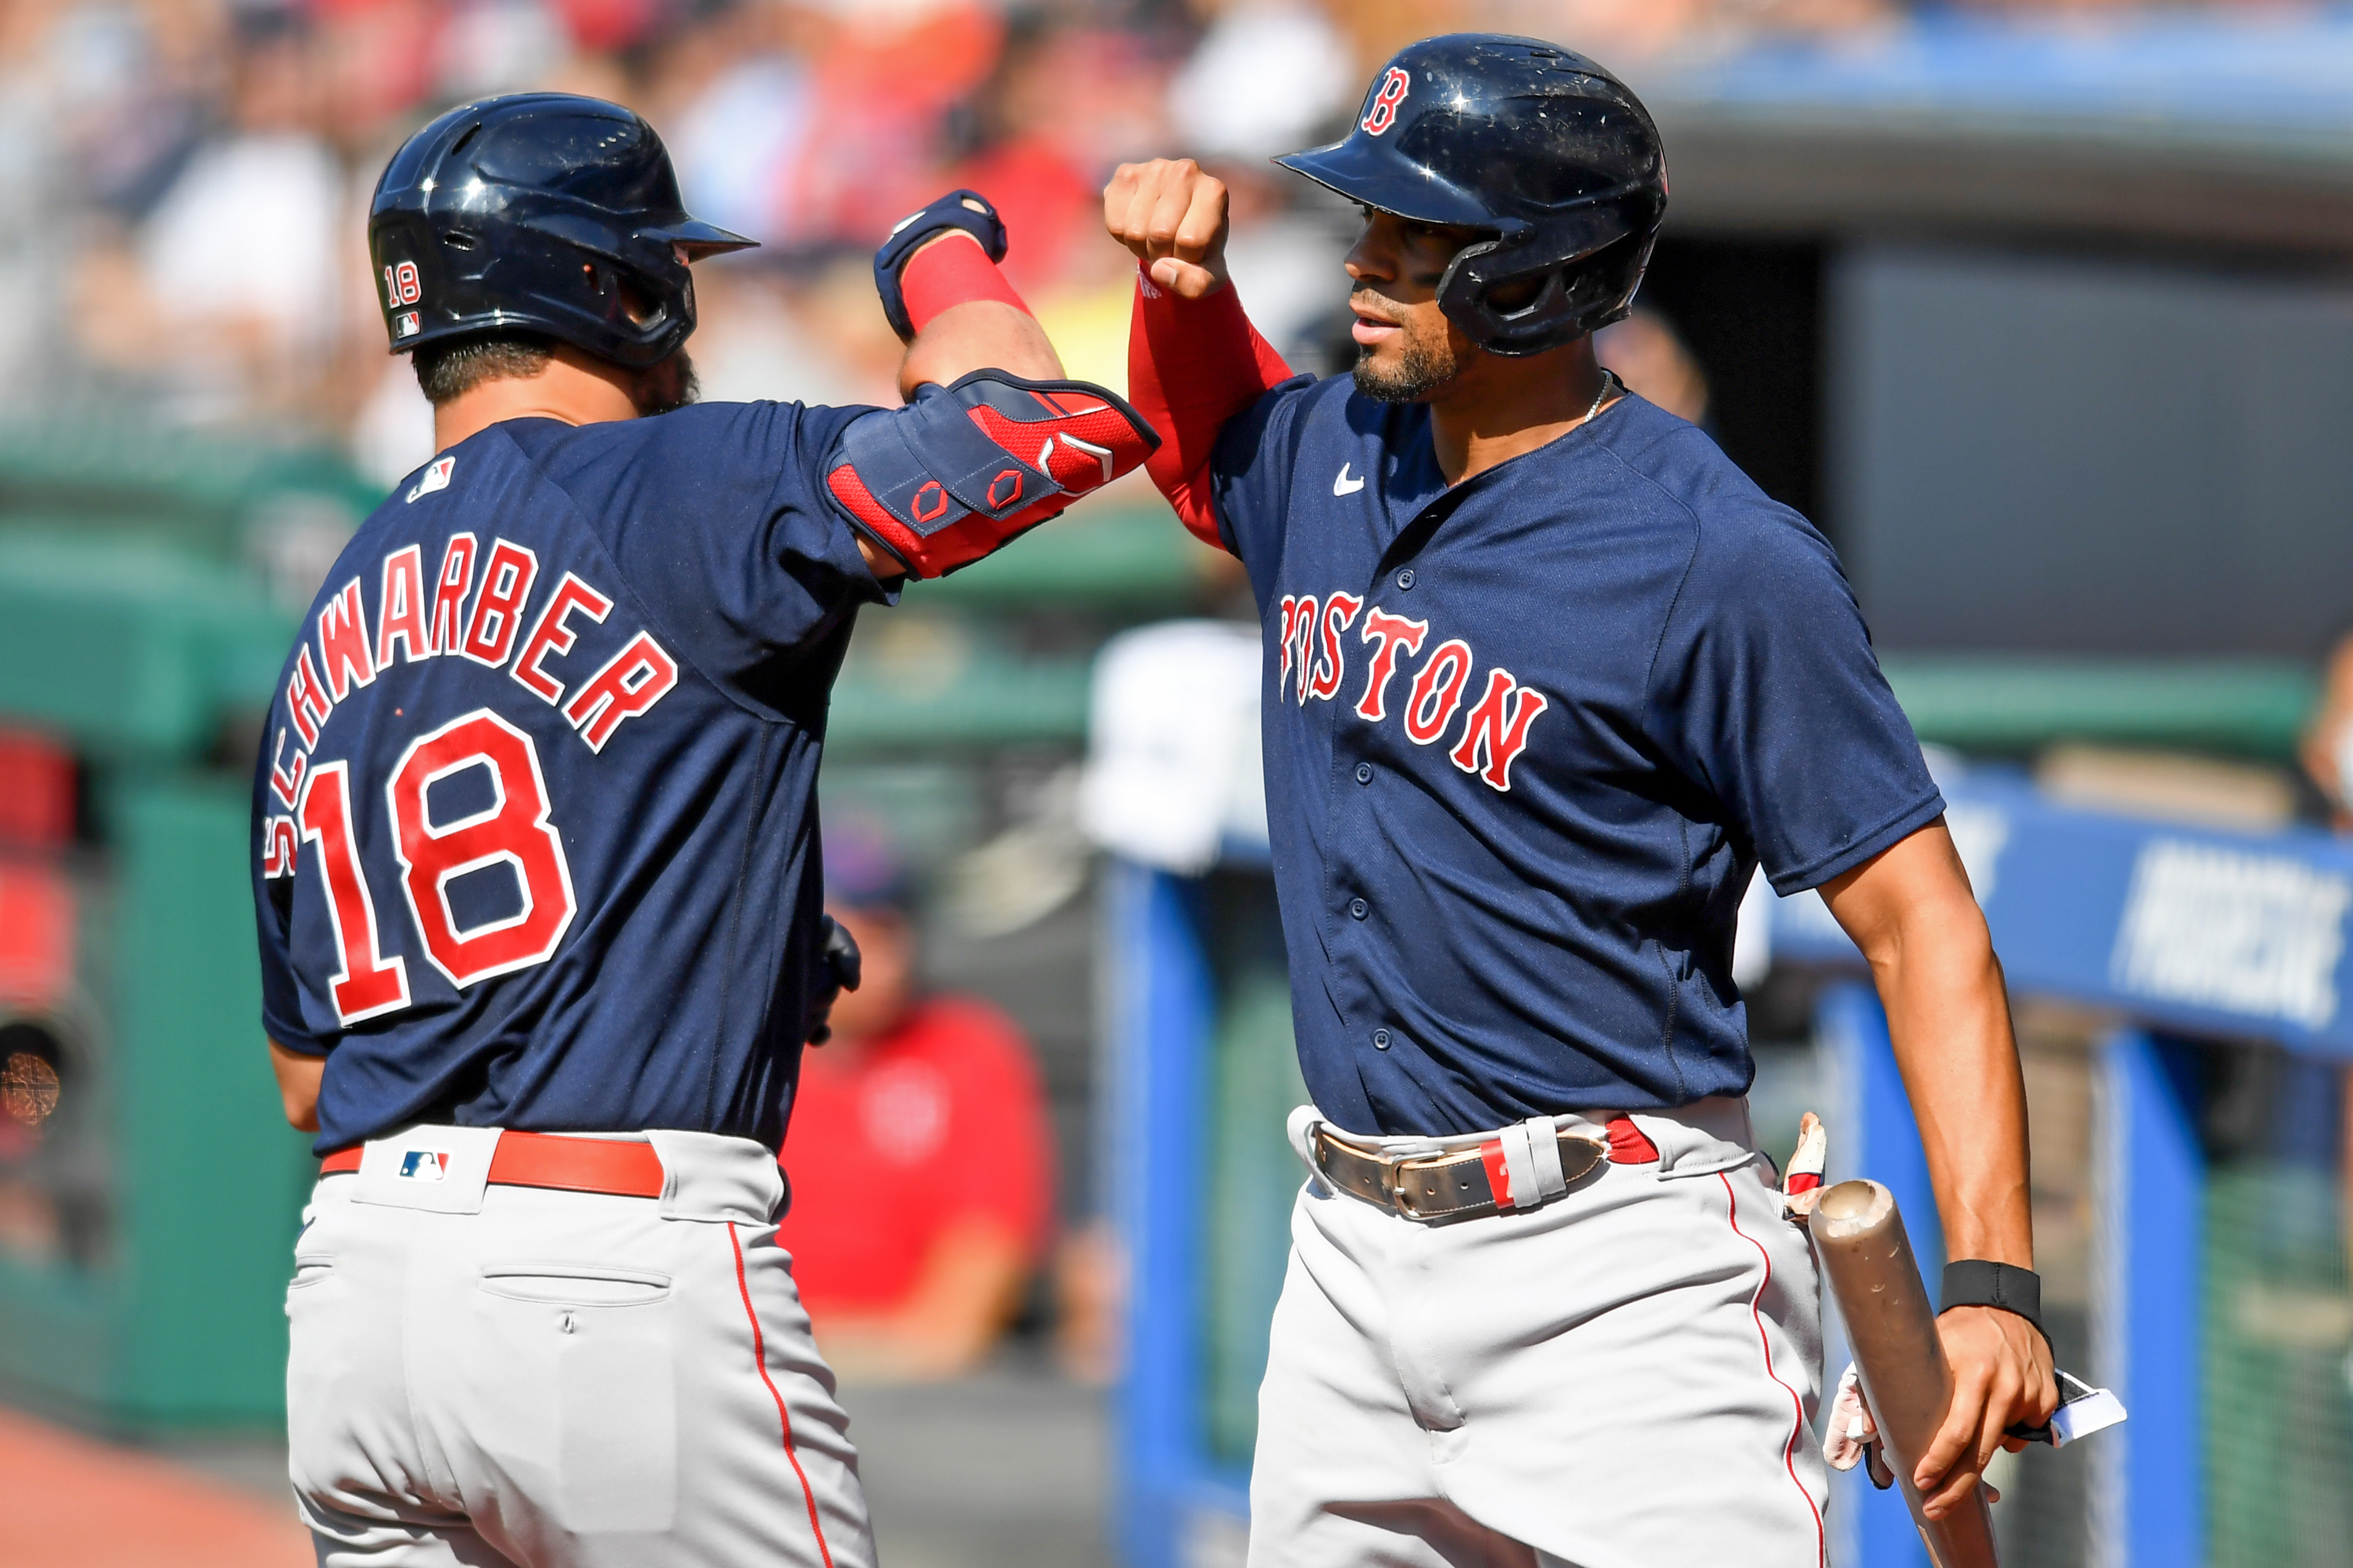 Kyle Schwarber and Xander Bogaerts of the Boston Red Sox celebrate after a solo home run by Schwarber off Cal Quantrill of the Cleveland Indians in the first inning at Progressive Field on August 28, 2021 in Cleveland, Ohio.